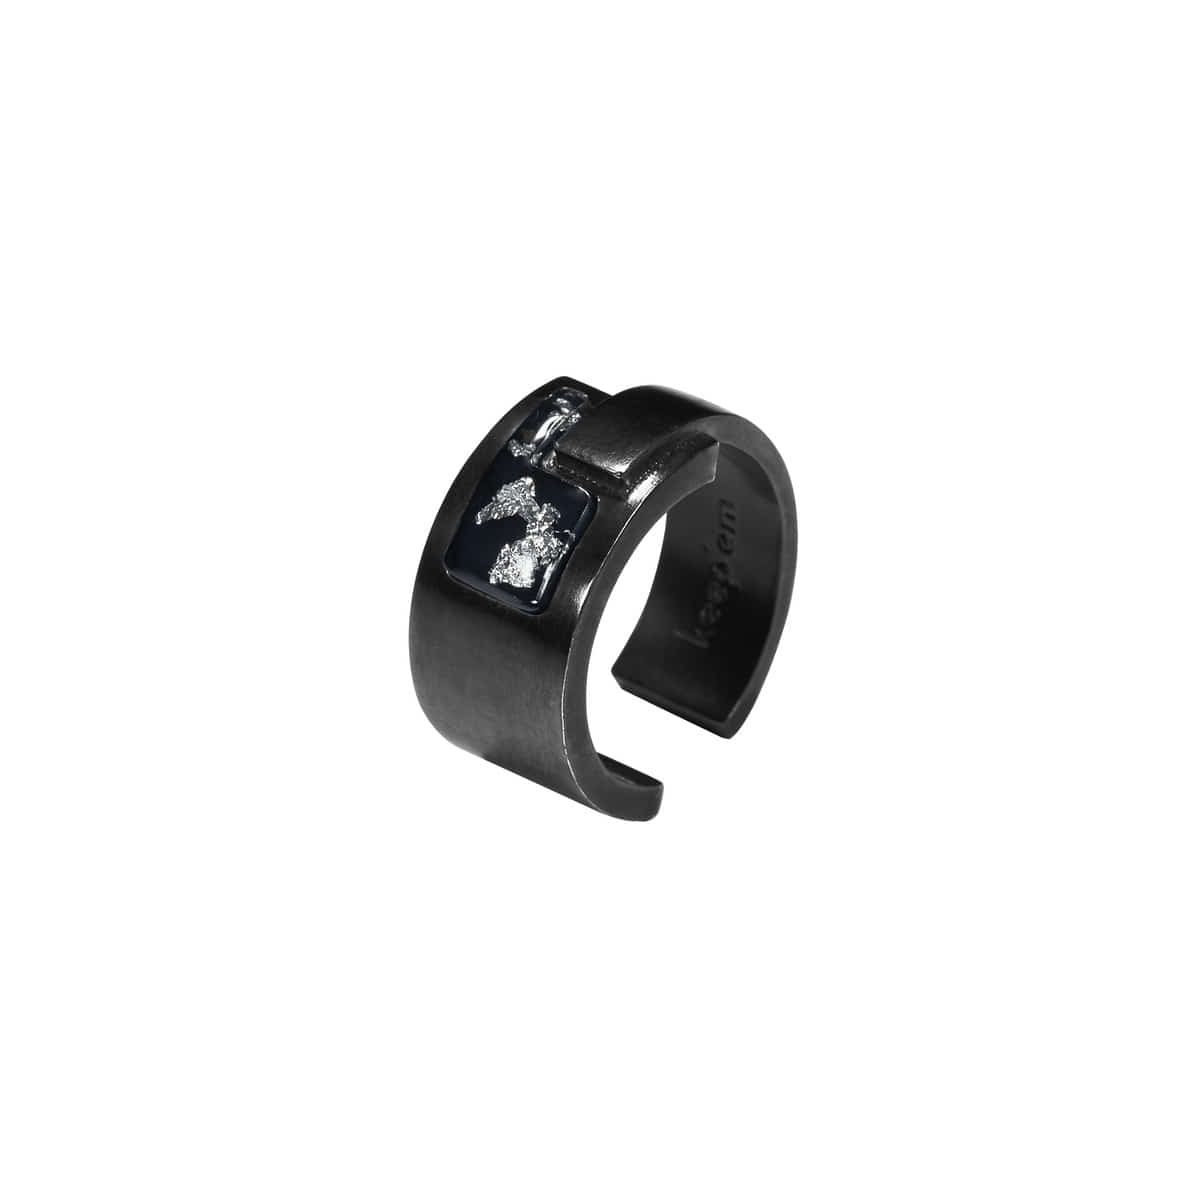 VAUX LE VICOMTE Ⅰ ring(BLACK)